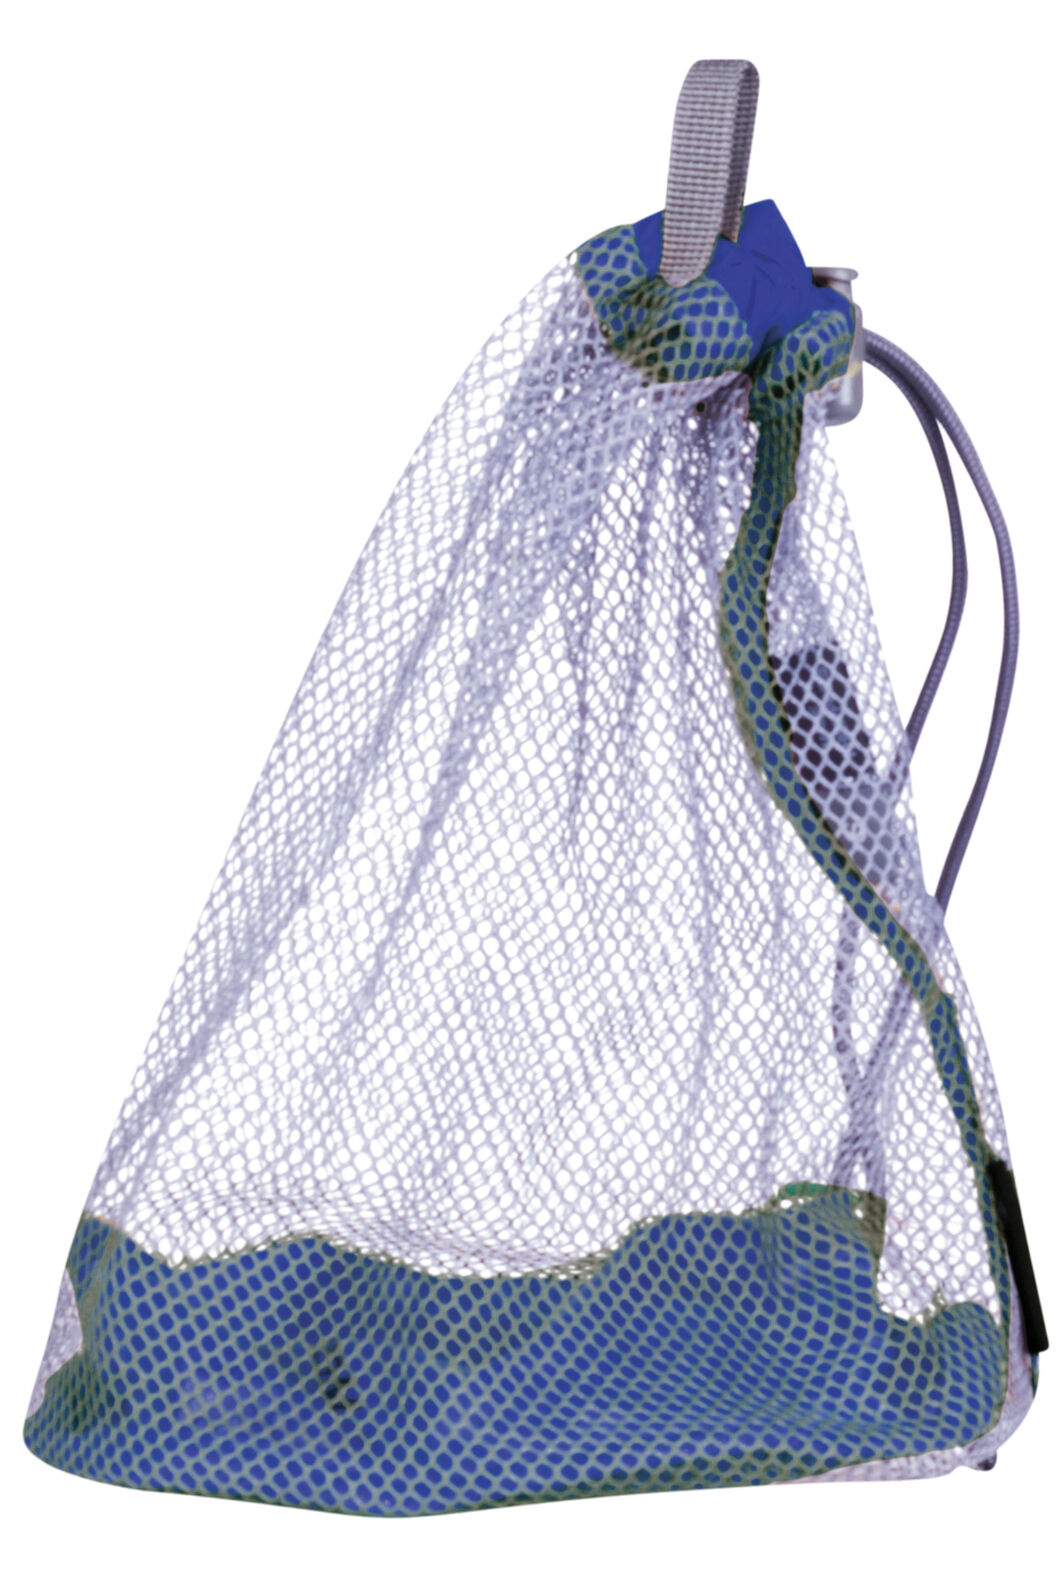 Macpac Mesh Stuff Sack Medium, Sodalite Blue, hi-res